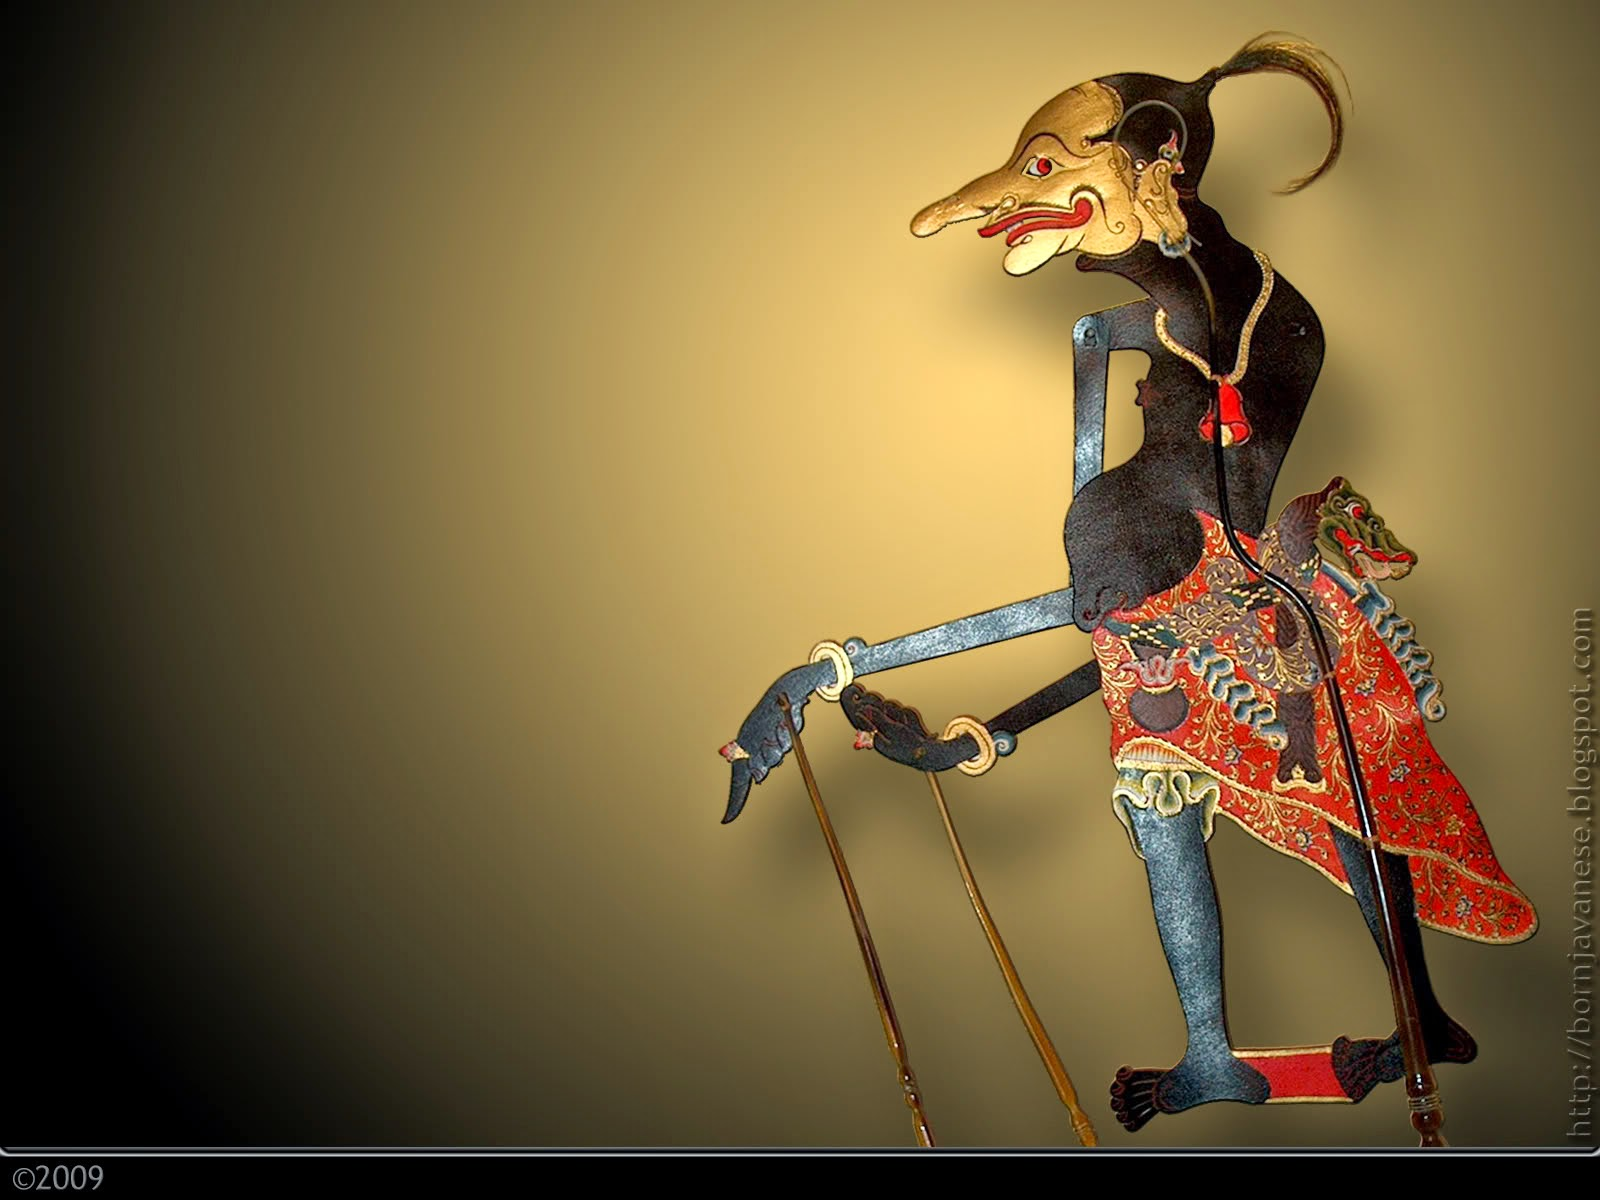 malaysia culture assignment malay wayang kulit shadow puppet 2014 malay wayang kulit shadow puppet blogger